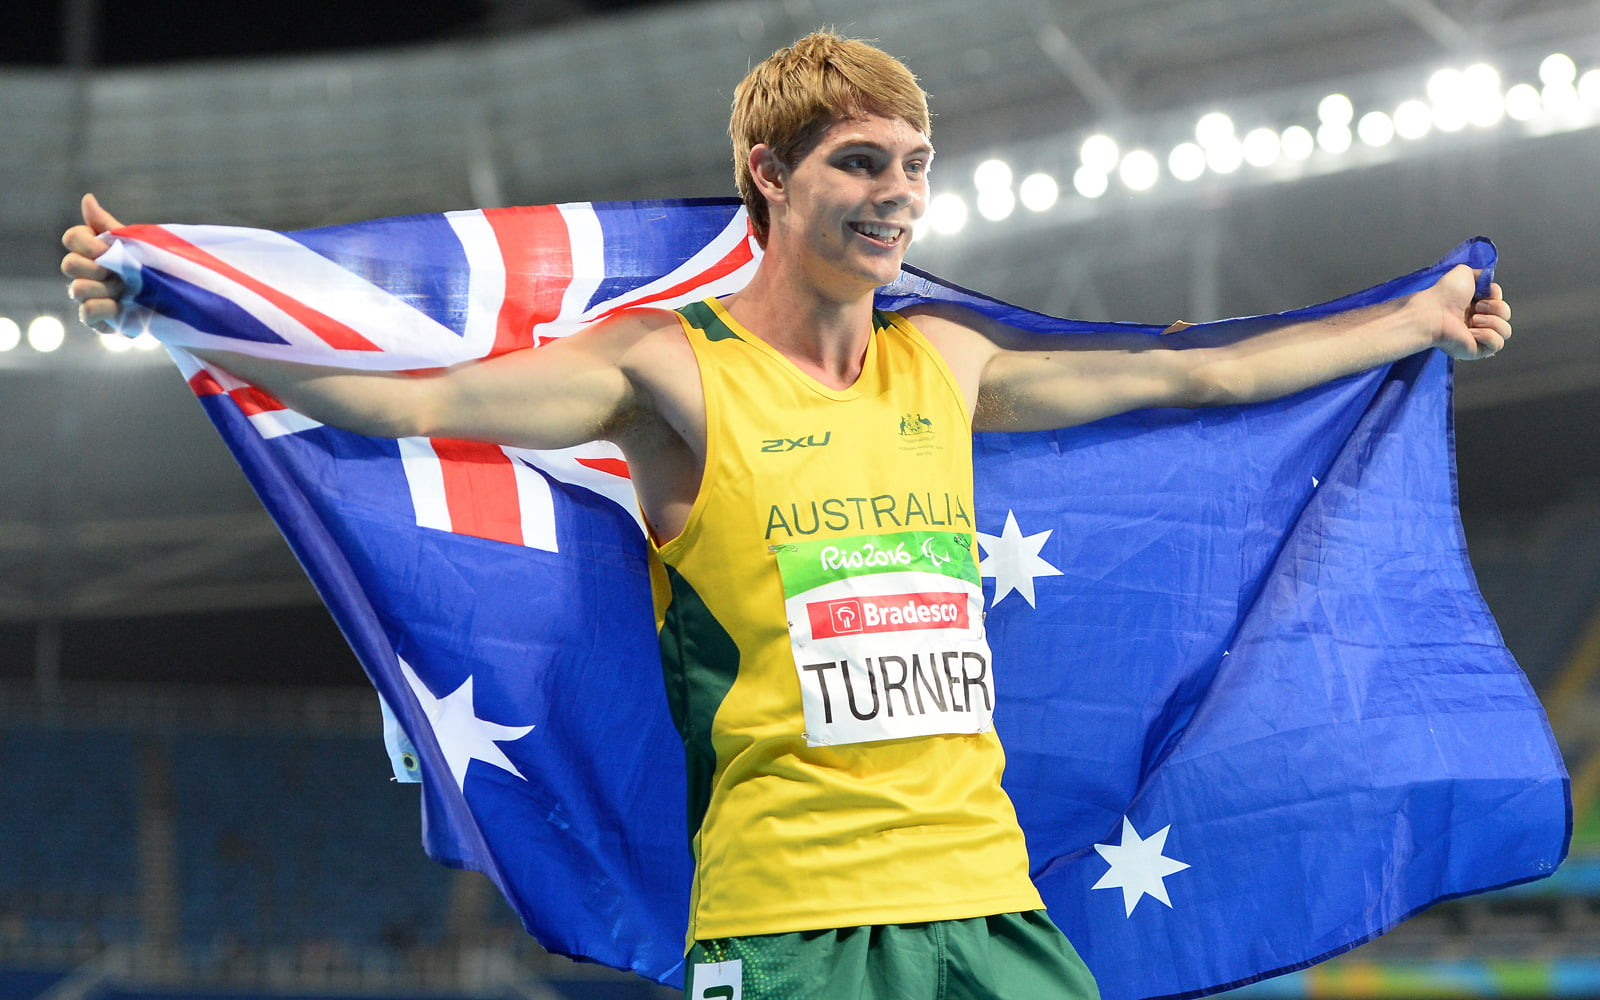 #ThrowbackThursday: Turner wins gold in Rio